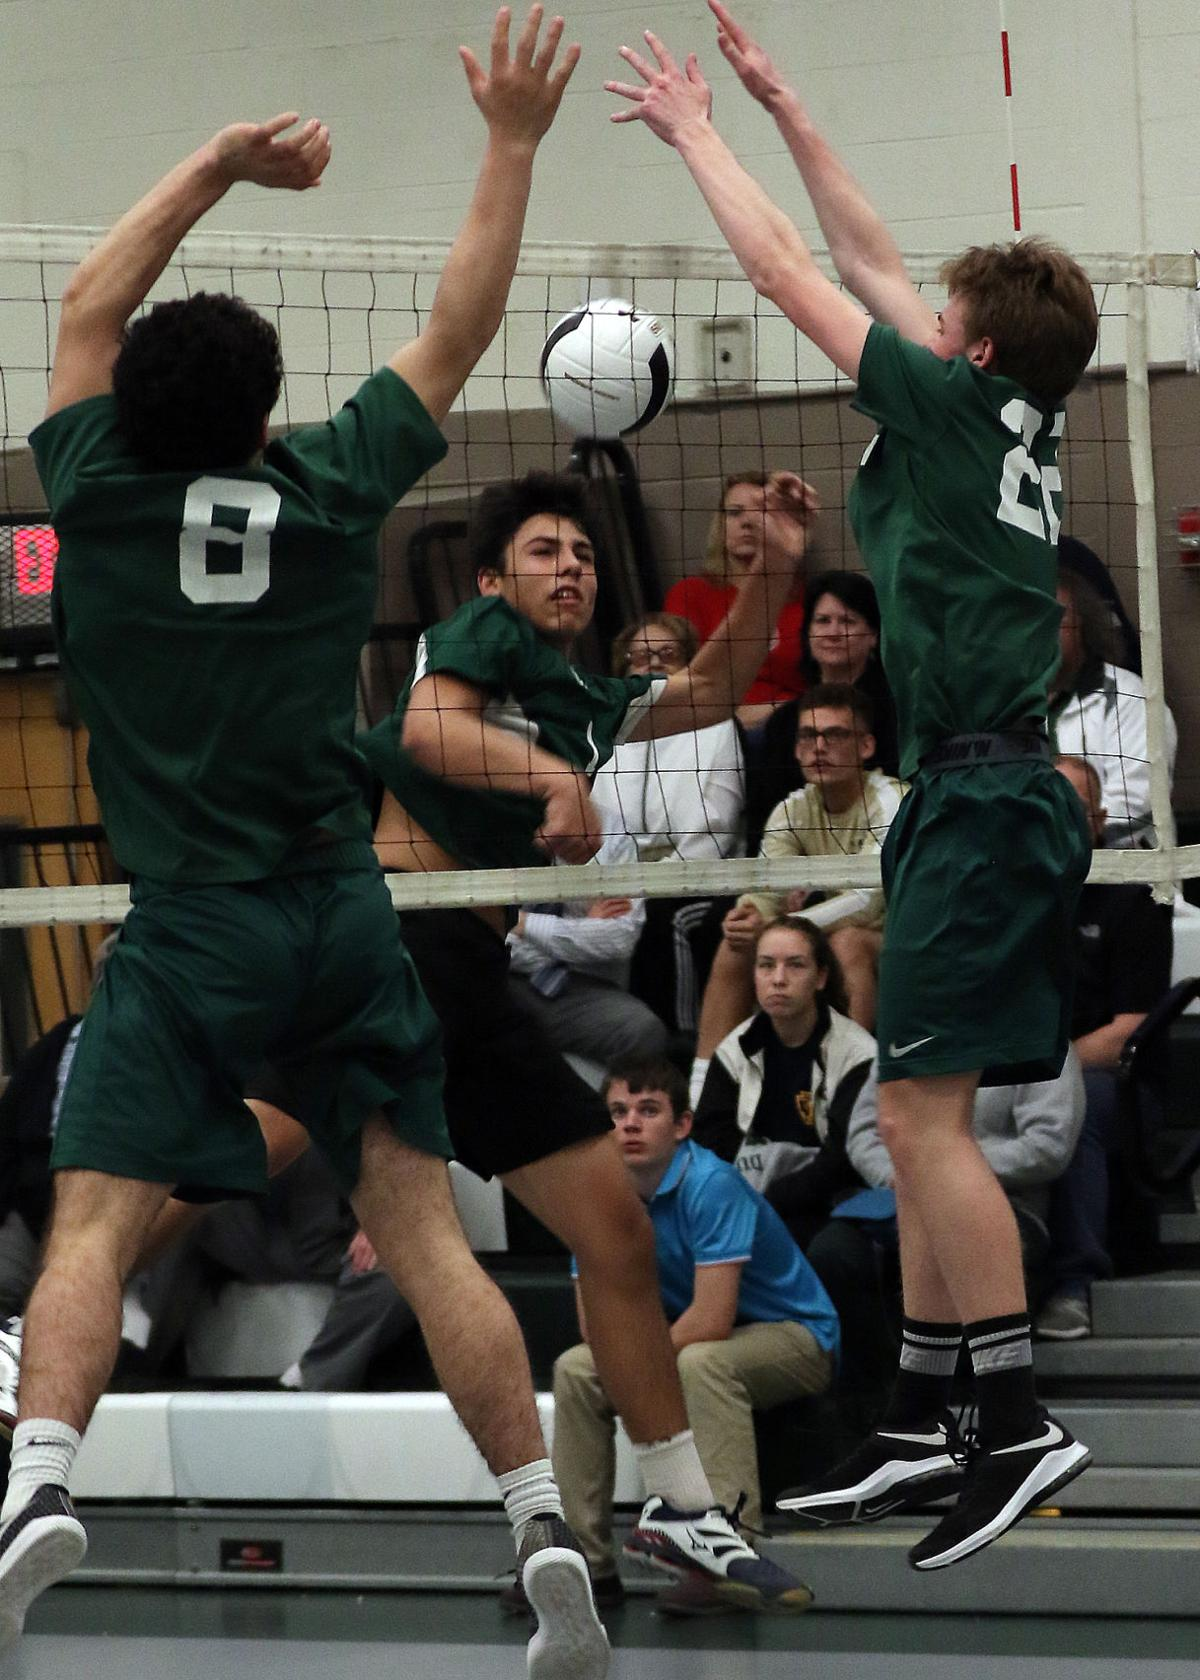 Chariho's Nathaniel Felicetti (1) watches his shot attempt during the Chariho vs Bishop Hendricken boys varsity volleyball game played Thursday evening, April 4th, 2019 at Chariho High School. | Jackie L. Turner, Special to The Sun.